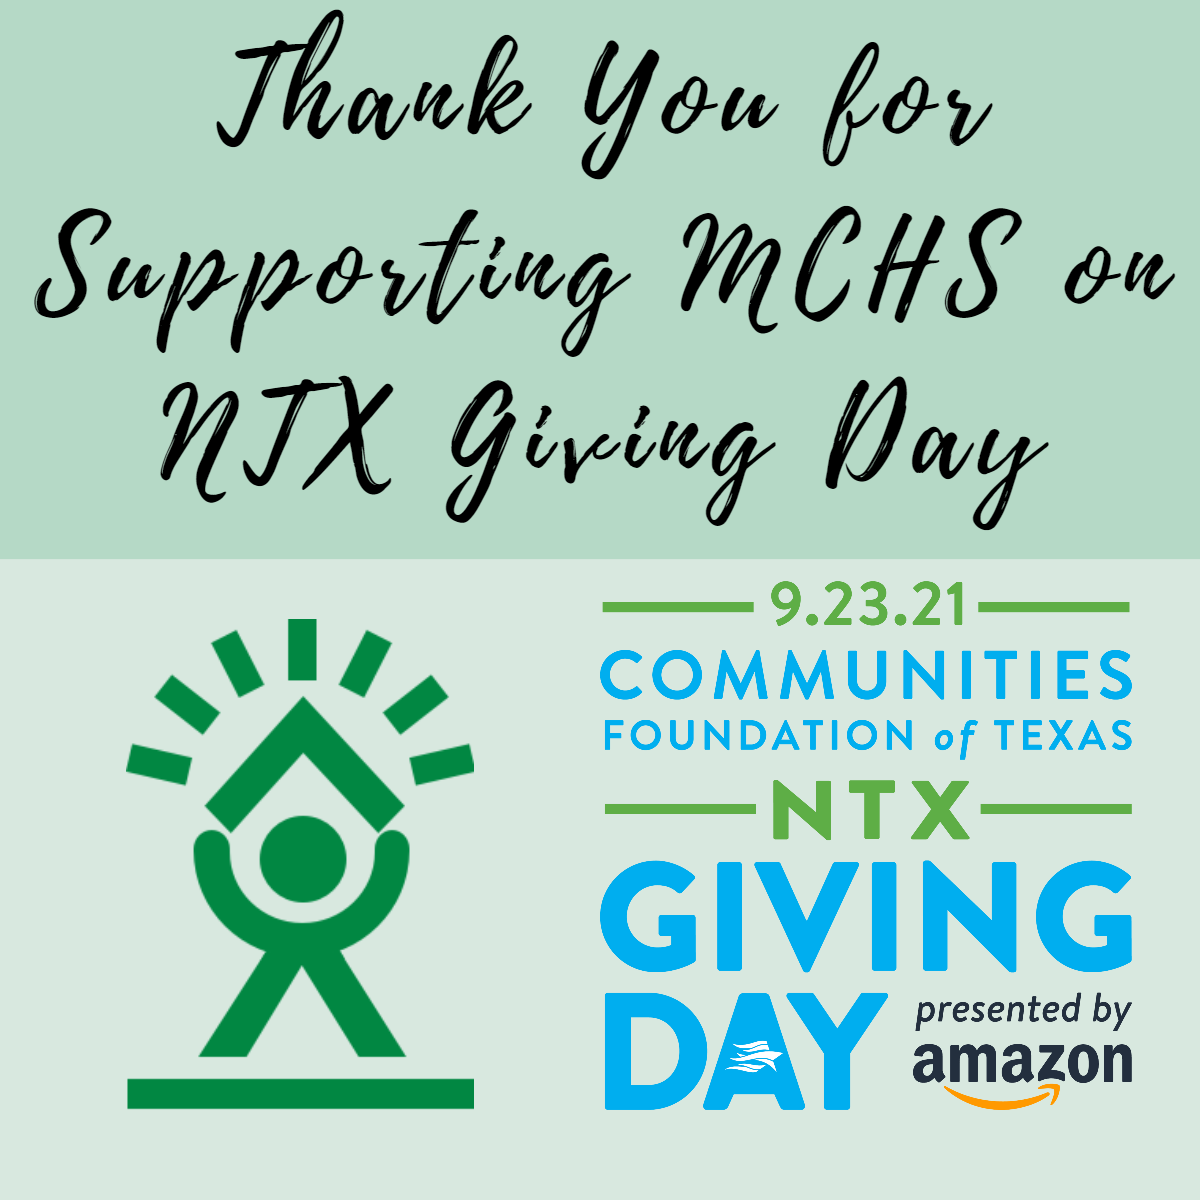 Thank you for supporting MCHS on NTX Giving Day